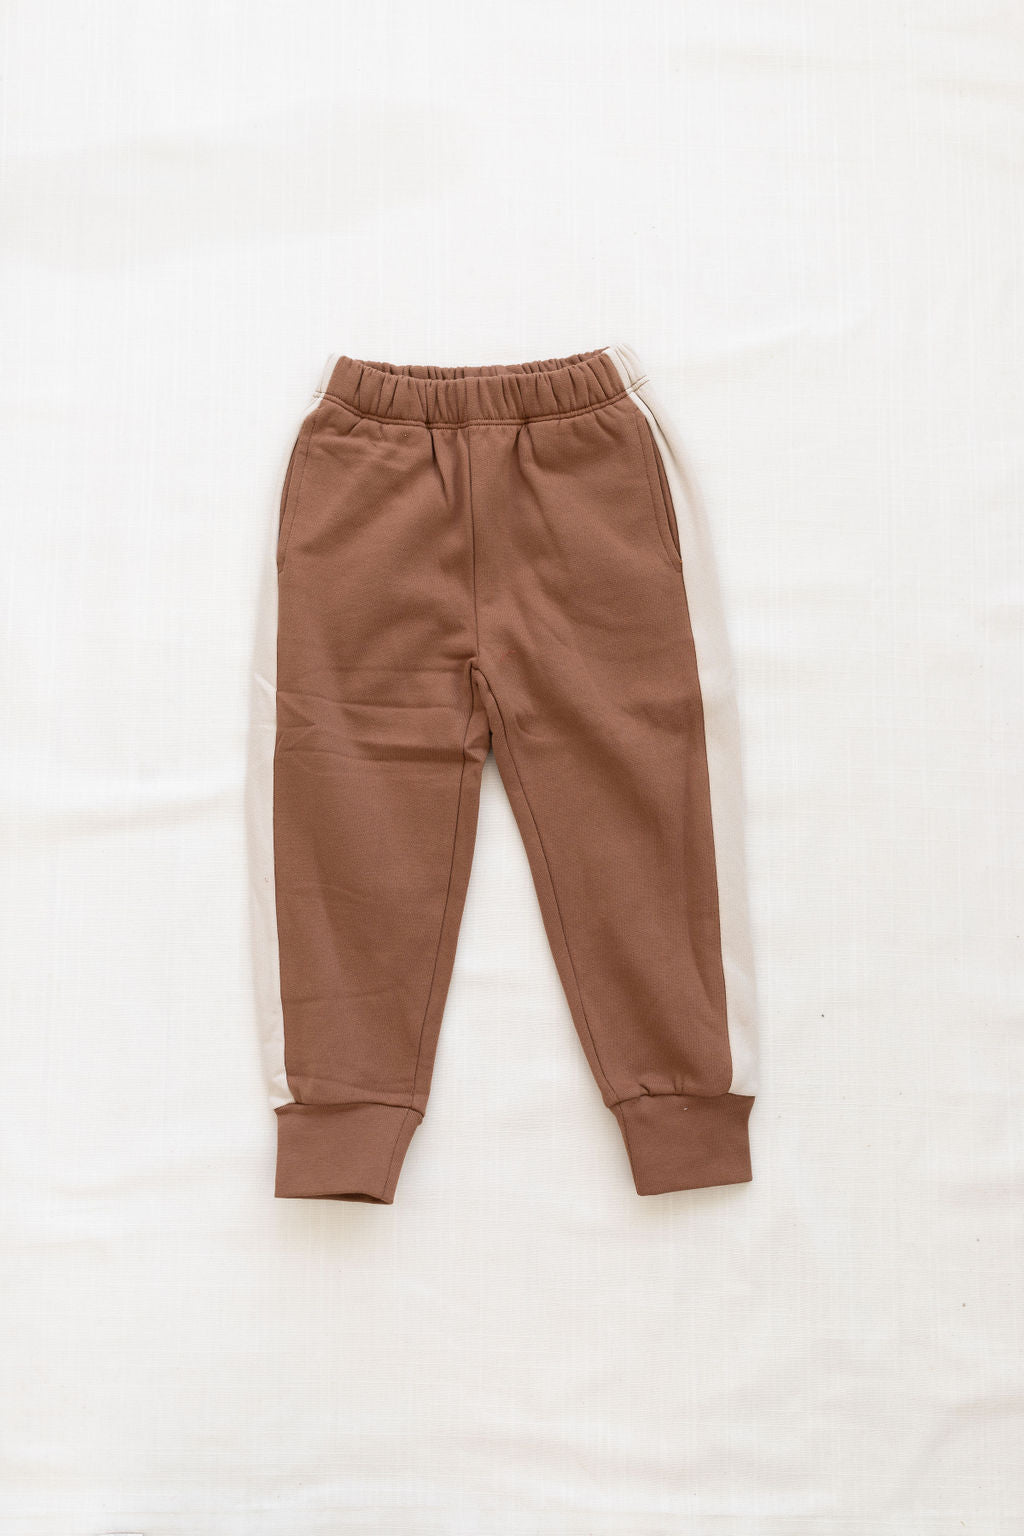 Fin and Vince - Fleece Jogger (Cinnamon) - Last 6/12